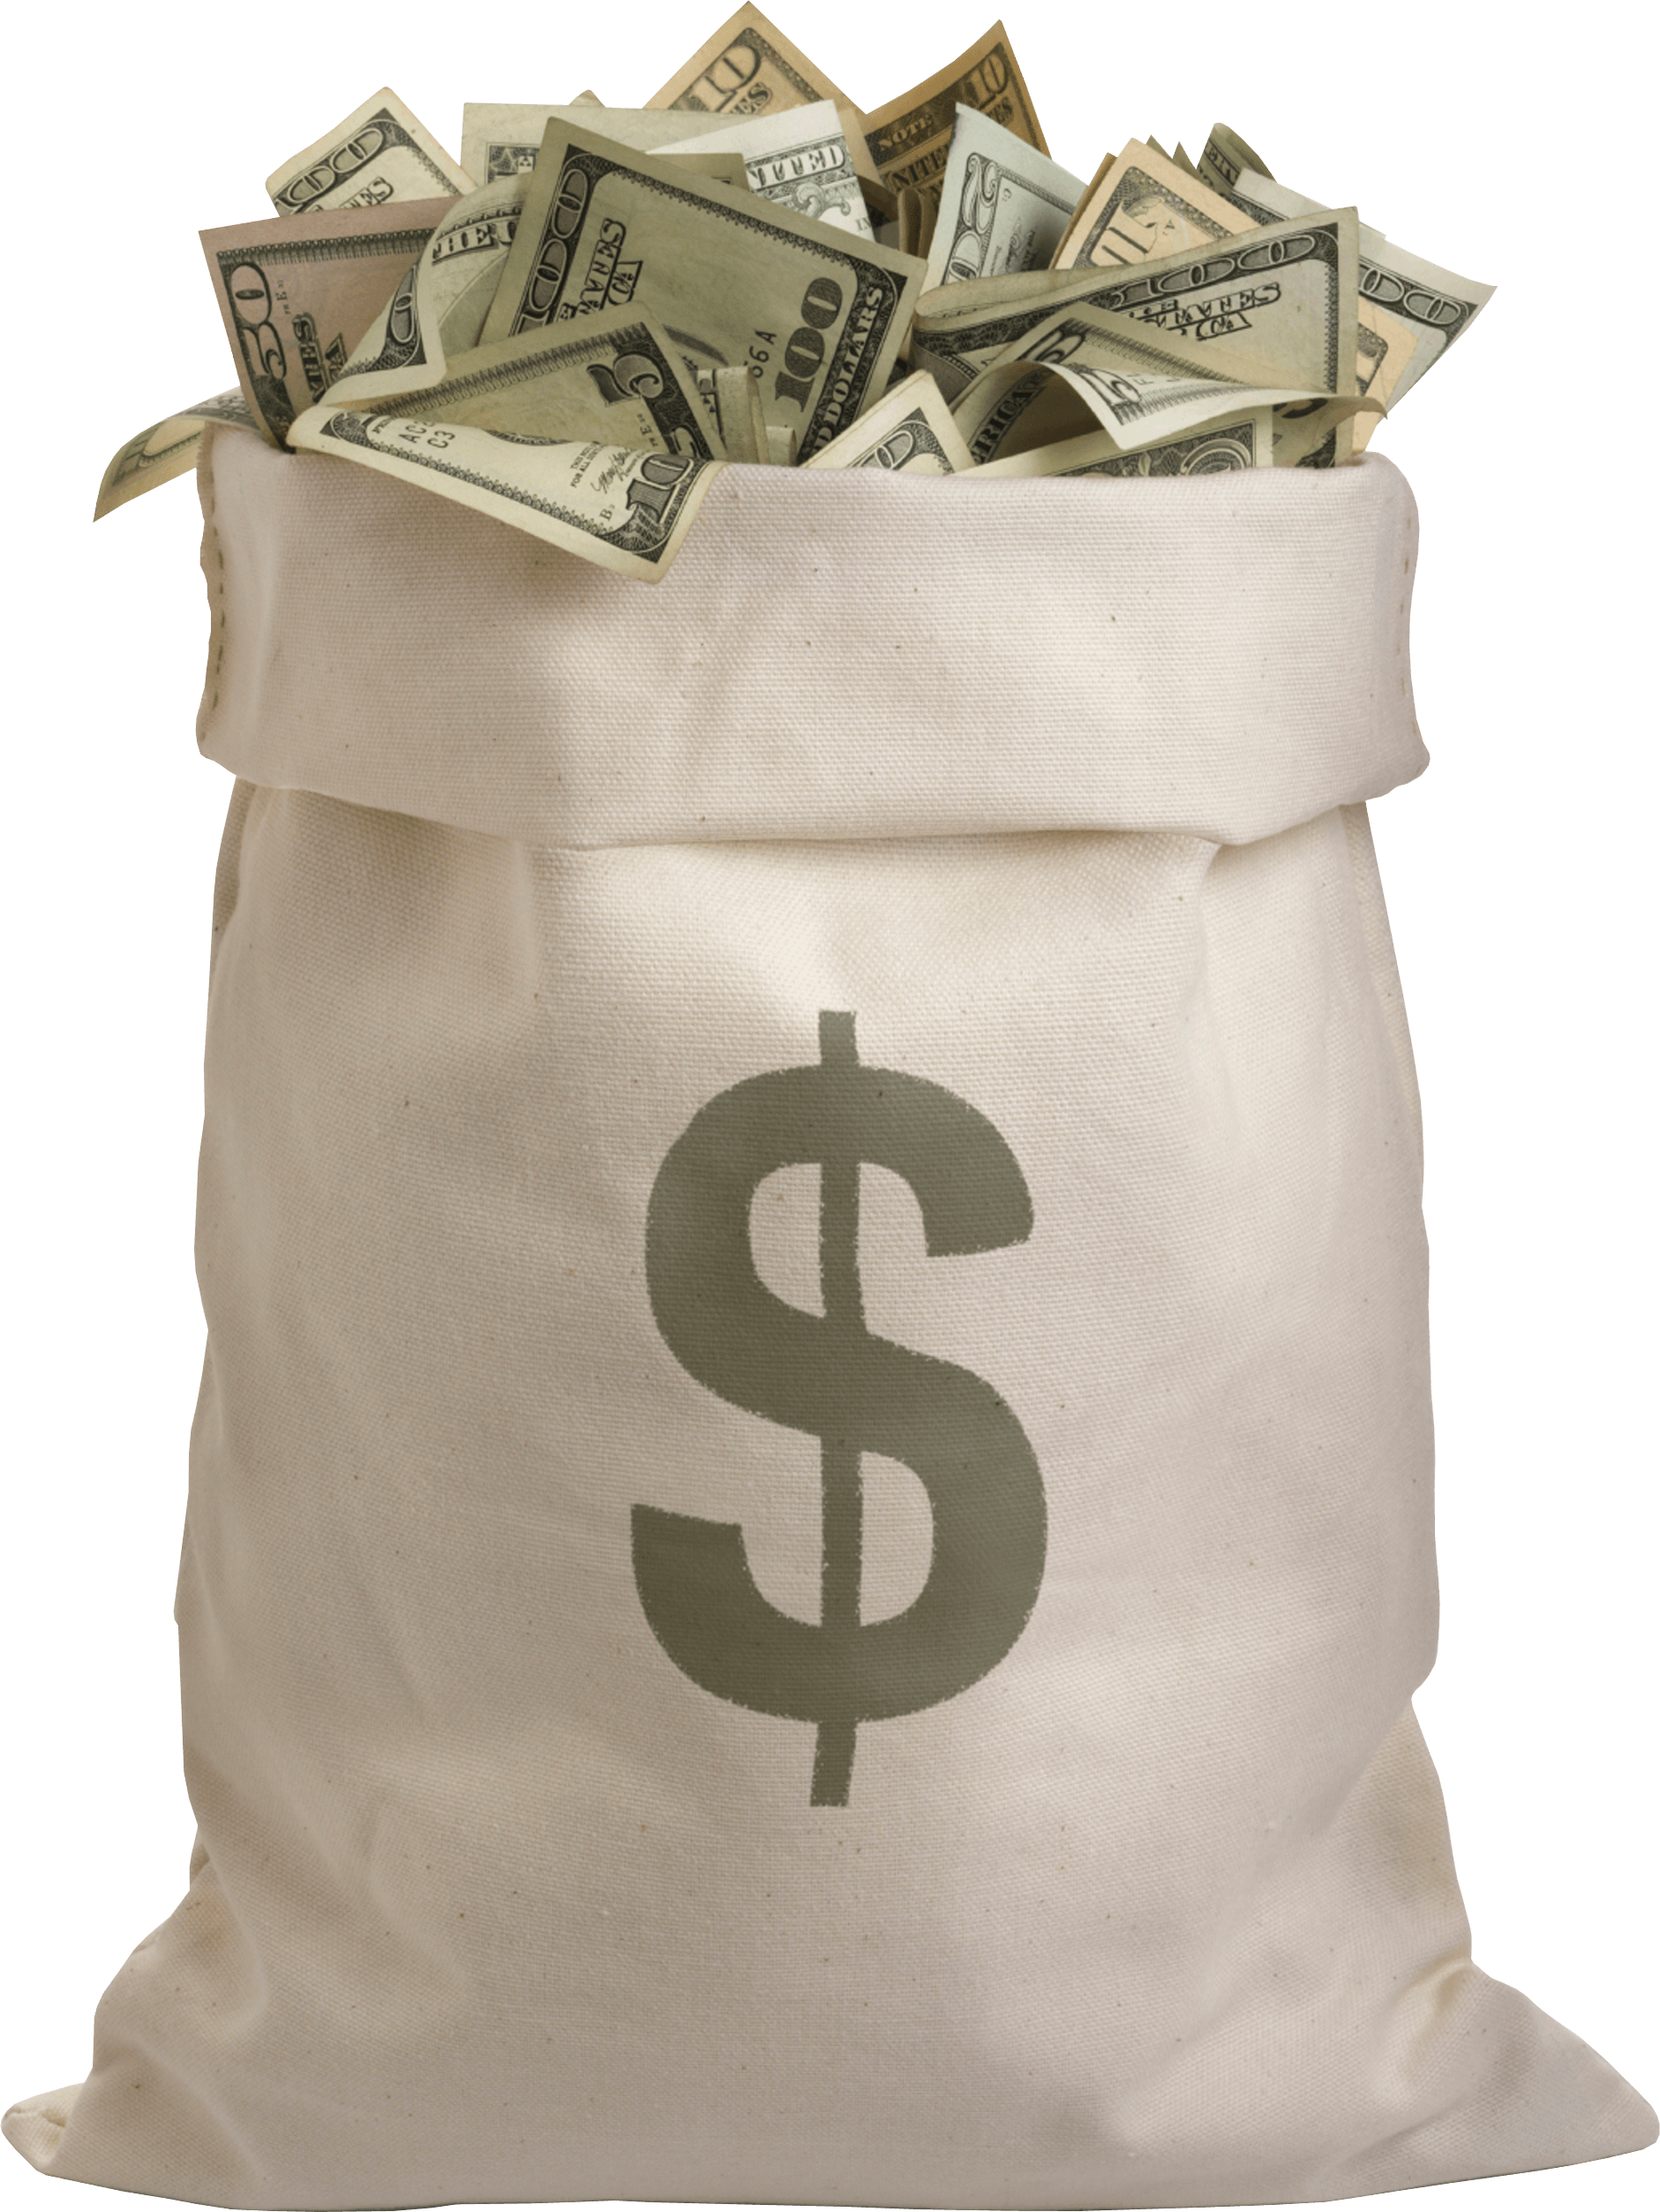 bag full of dollars money transparent png stickpng